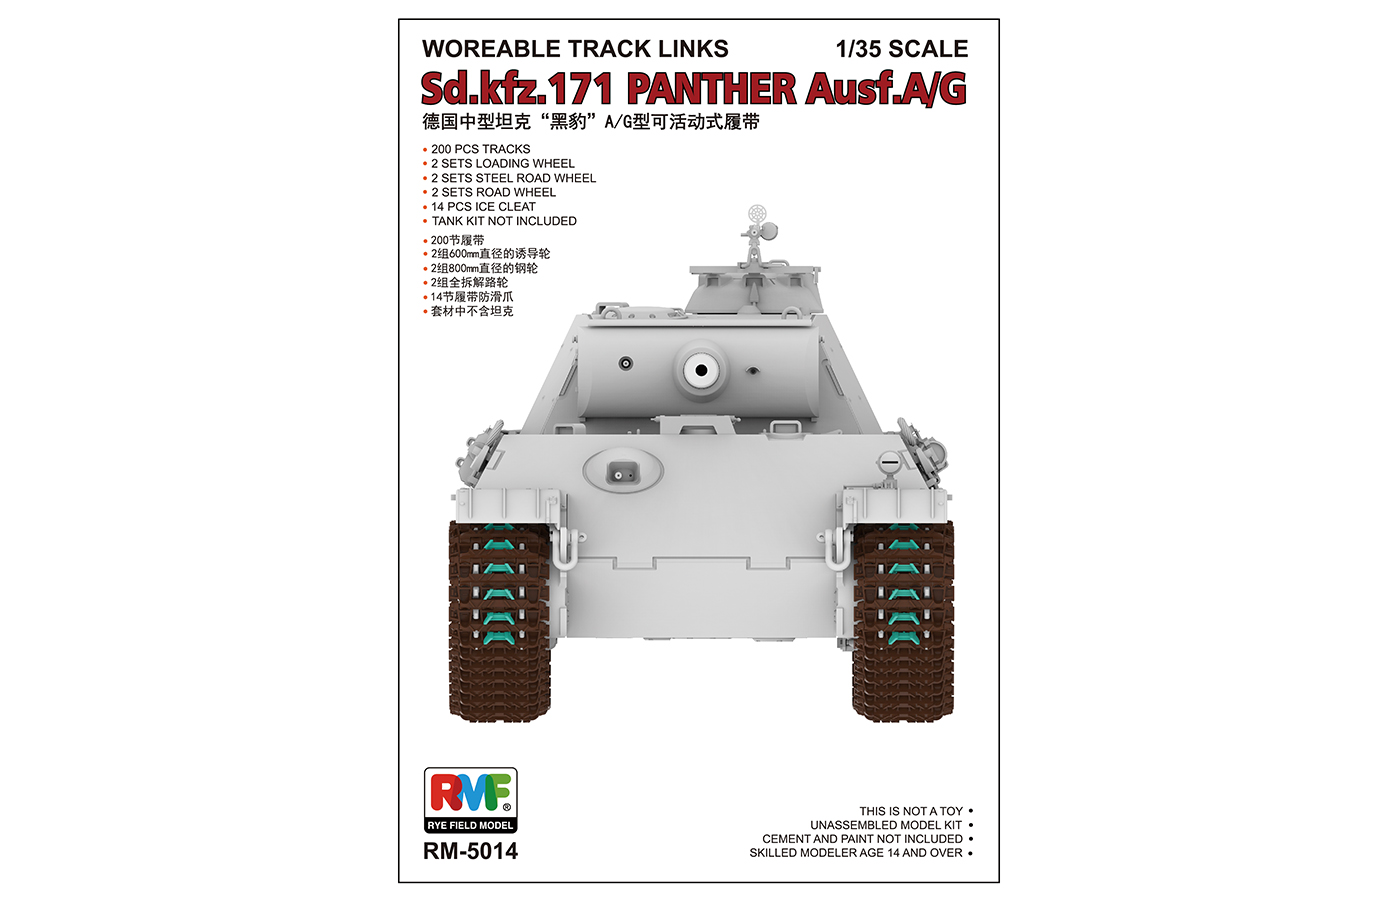 RM-5014 Workable Track Links For Panther Ausf.A/G